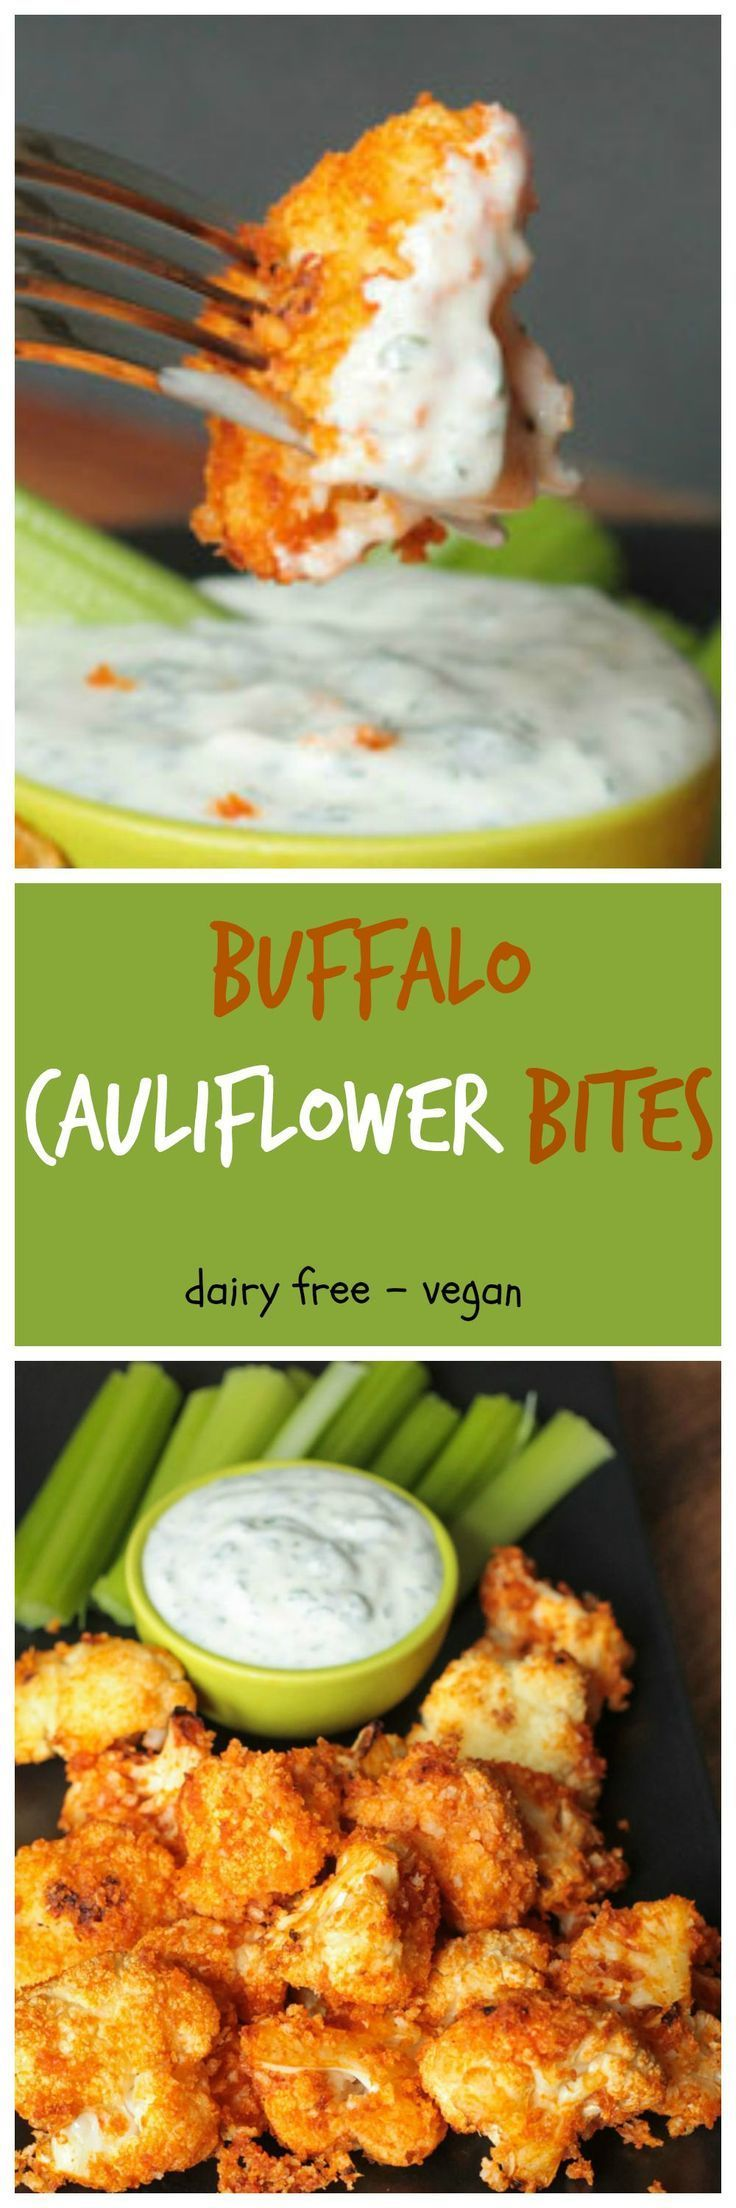 Hands down my all time favorite !! Only I make vegan bluecheese dressing. I have been eating so unhealthy with all this damn stress..time to get back at it!